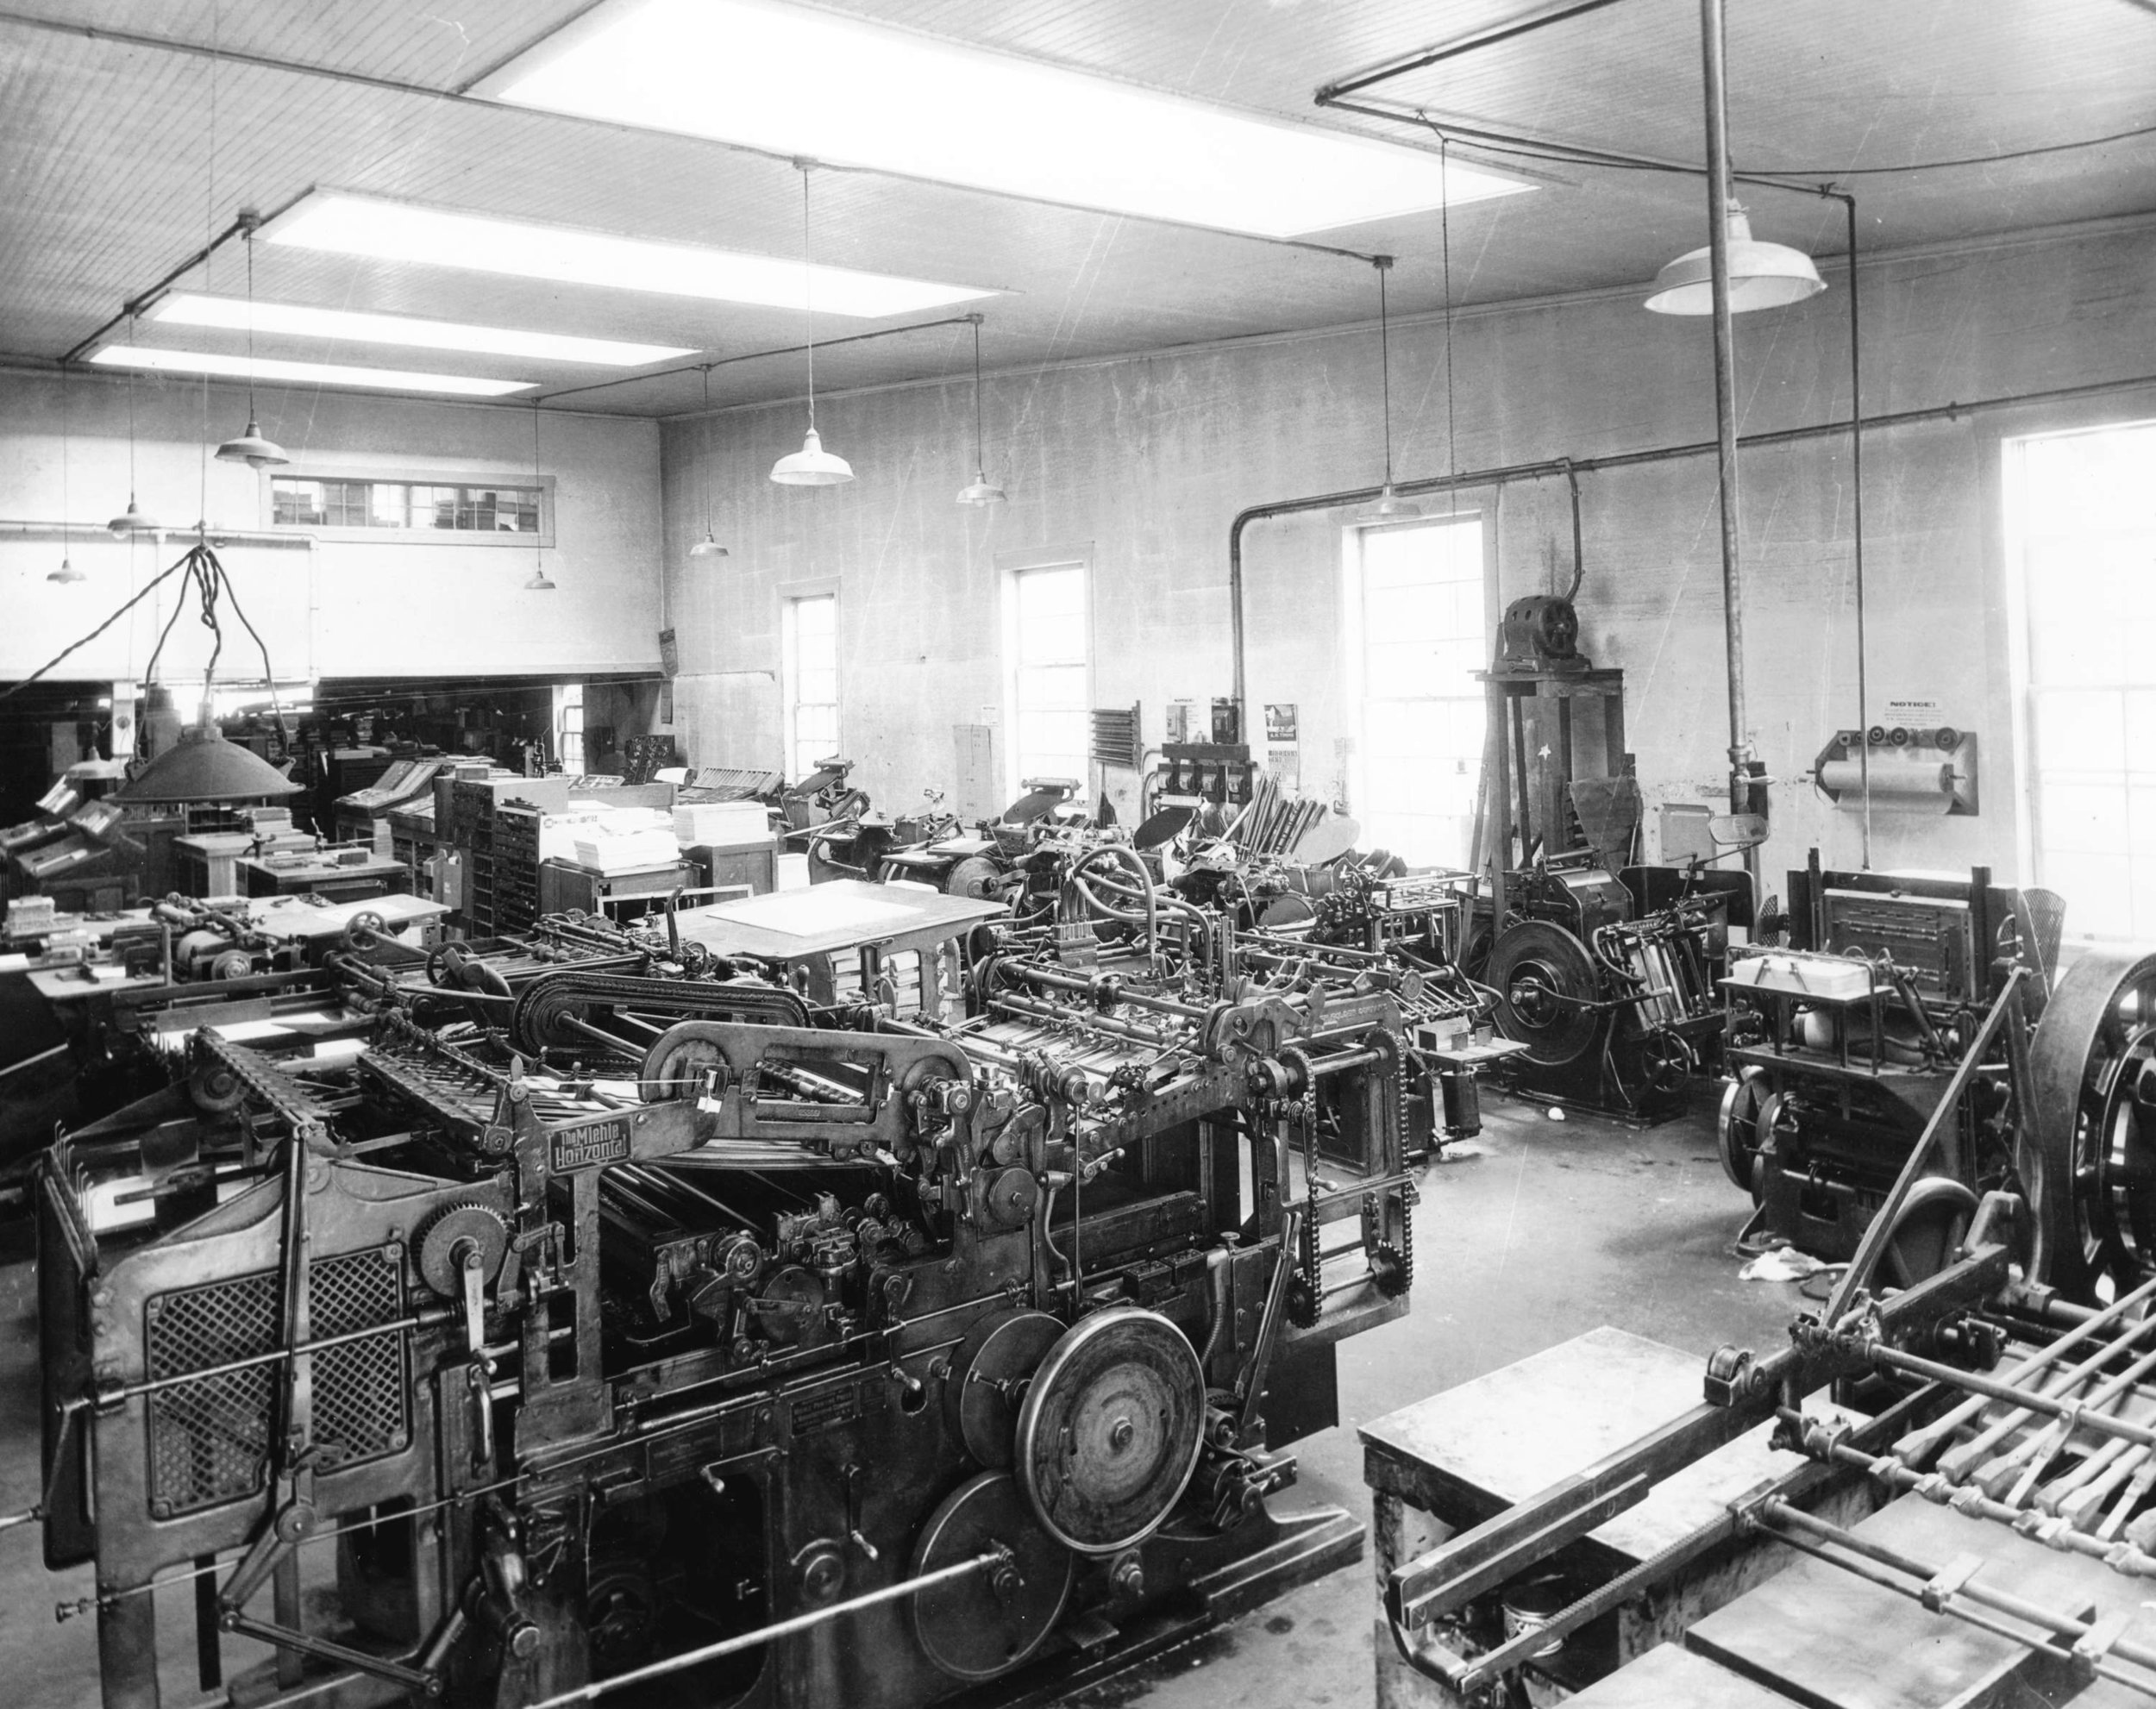 Photo from inside the shop showing the machinery of printing. By Philip T. Timms, courtesy City of Vancouver Archives